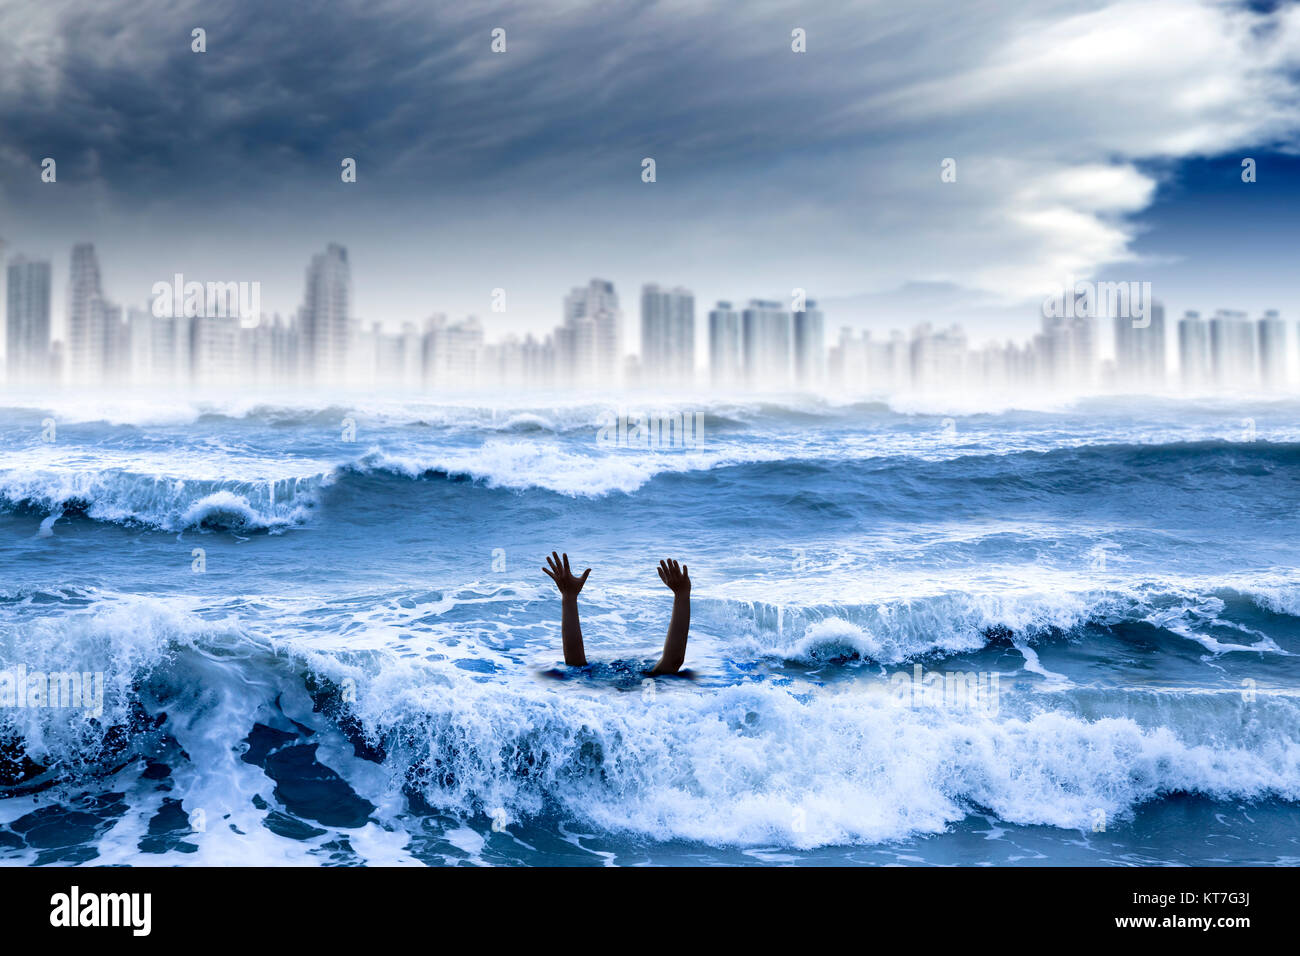 global warming and extreme weather concept. man drowning in the water and storm destroyed the city - Stock Image